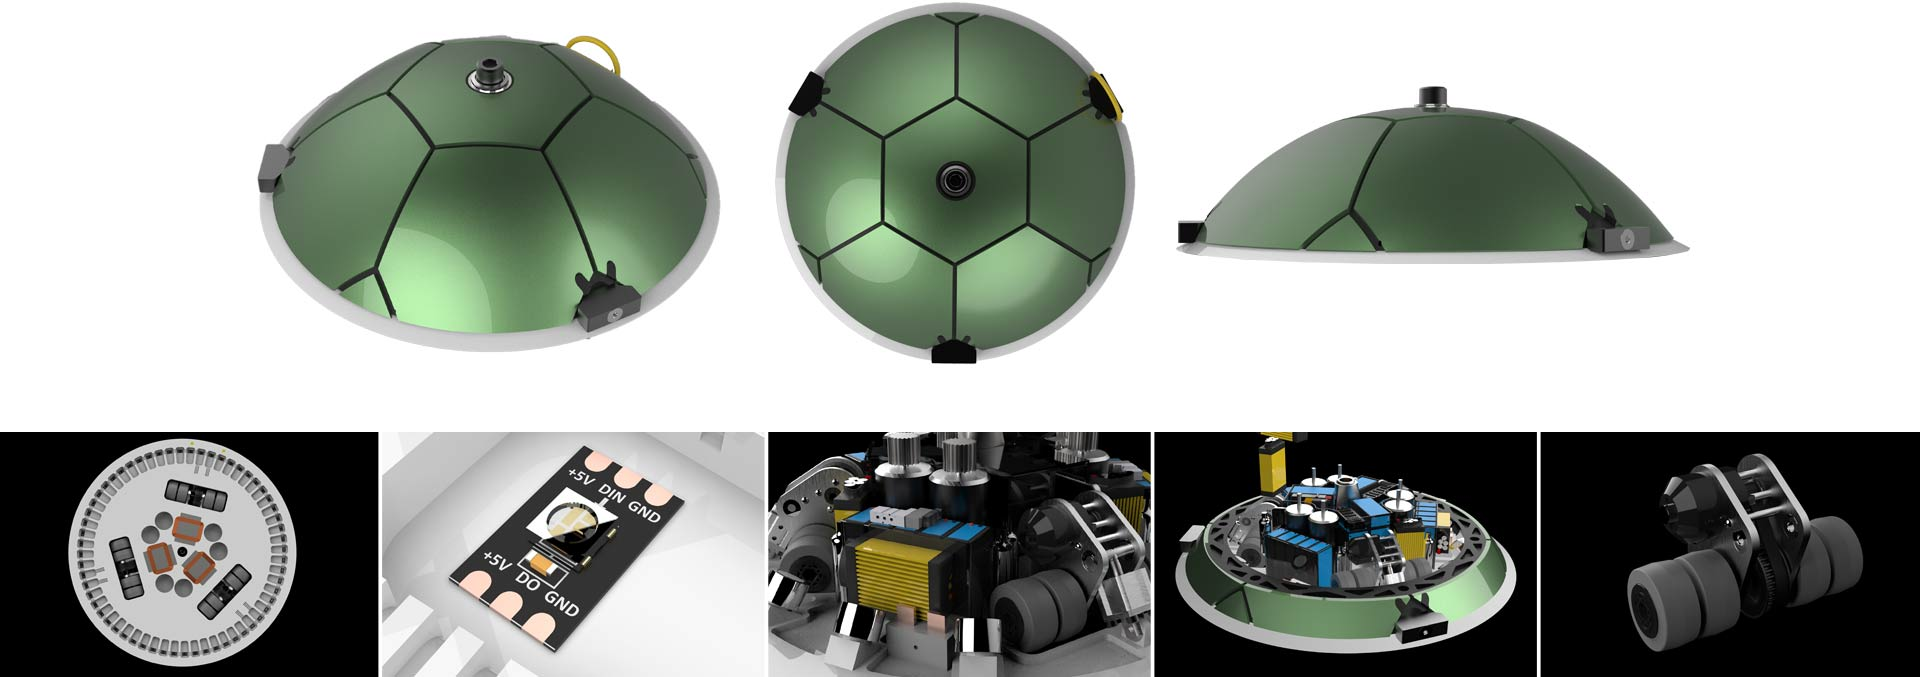 Detailed images of the robot and its components